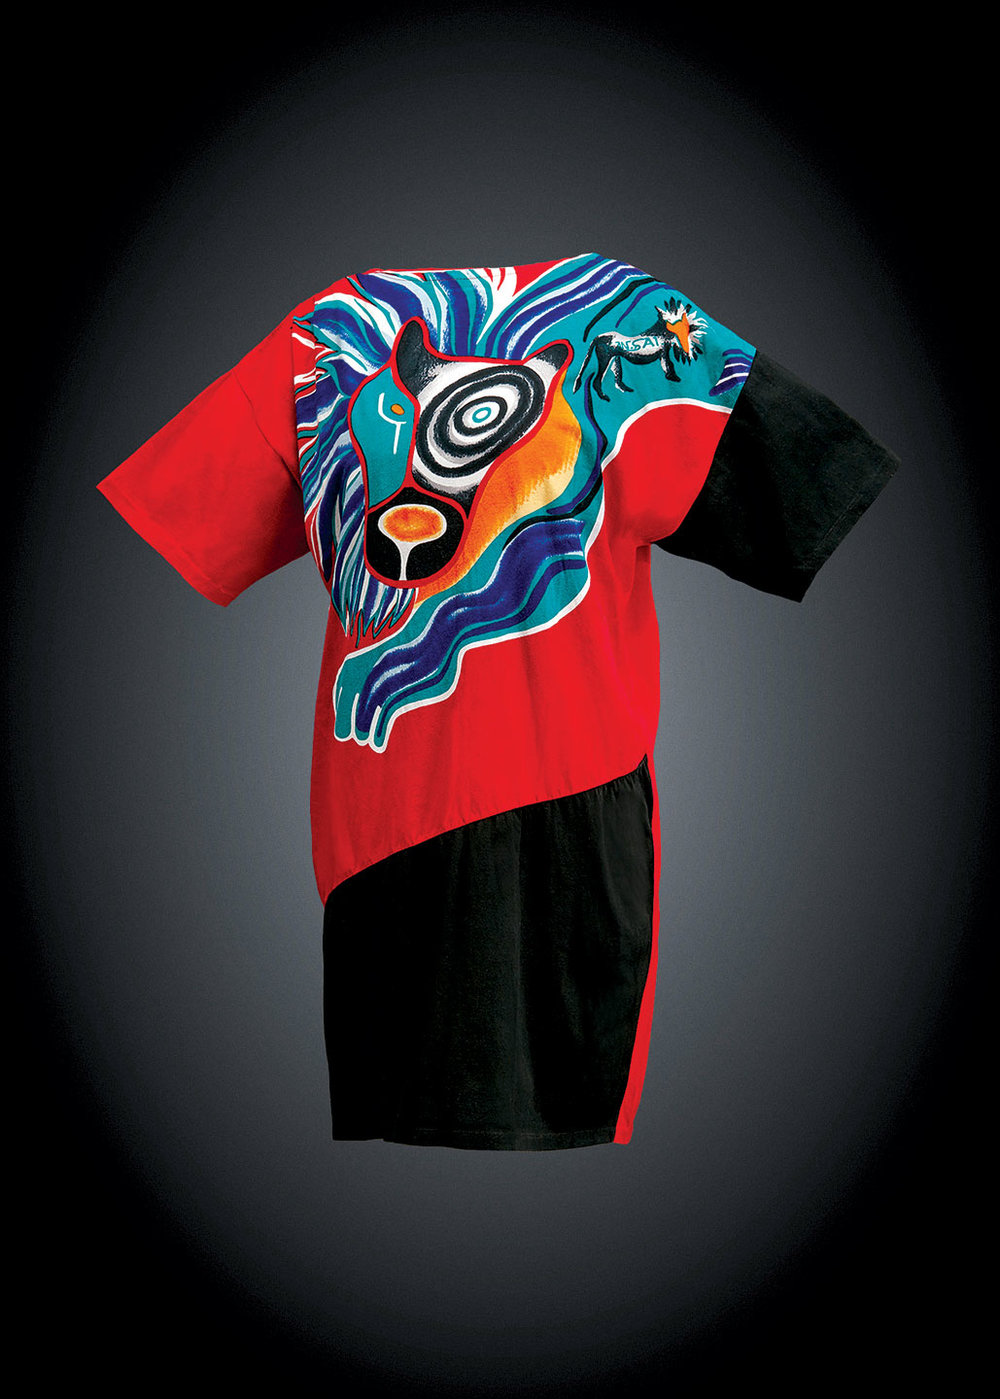 T-SHIRT DRESS by Kansai Yamamoto of printed cotton jersey, about 1980.  Photographs courtesy of Denver Art Museum: Neusteter Textile Collection.